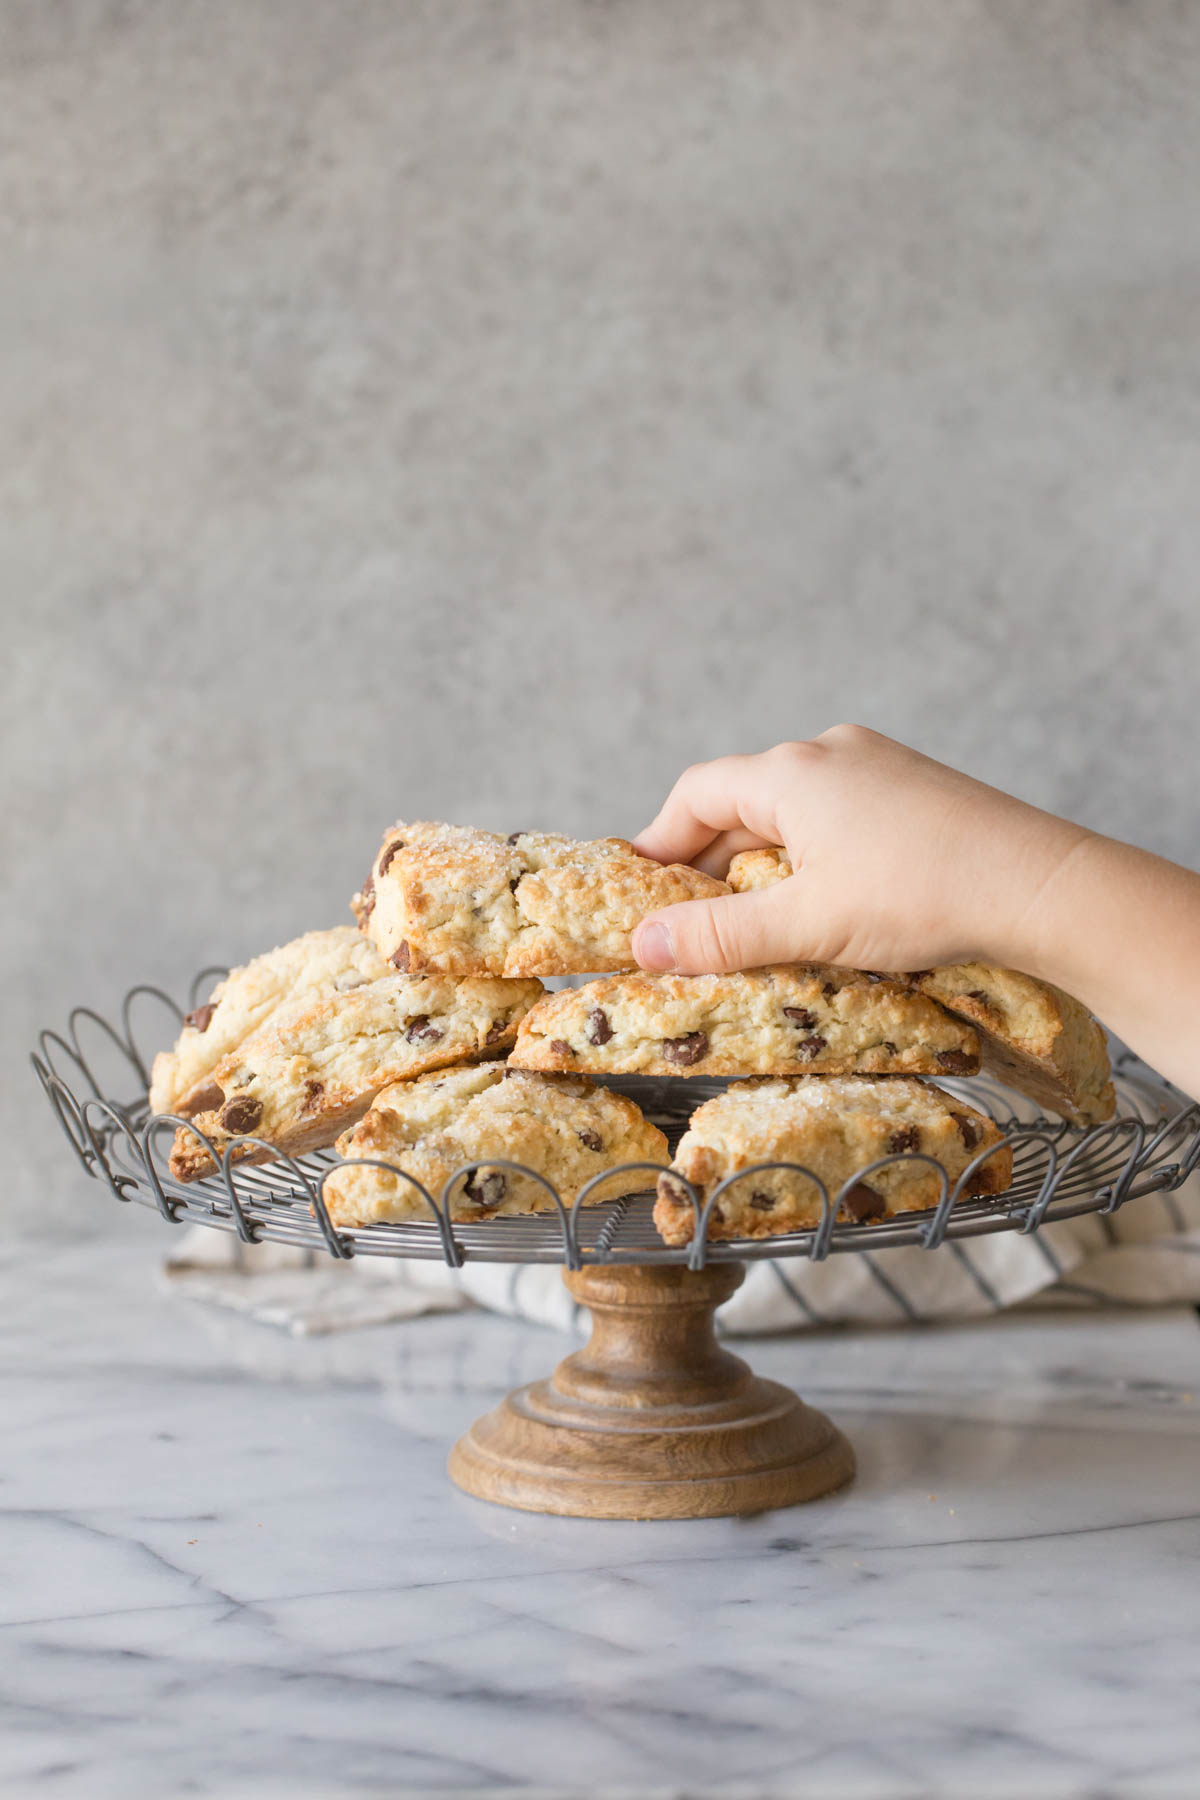 A stack of Chocolate Chip Scones on a cake stand with a hand reaching for the scone on top.